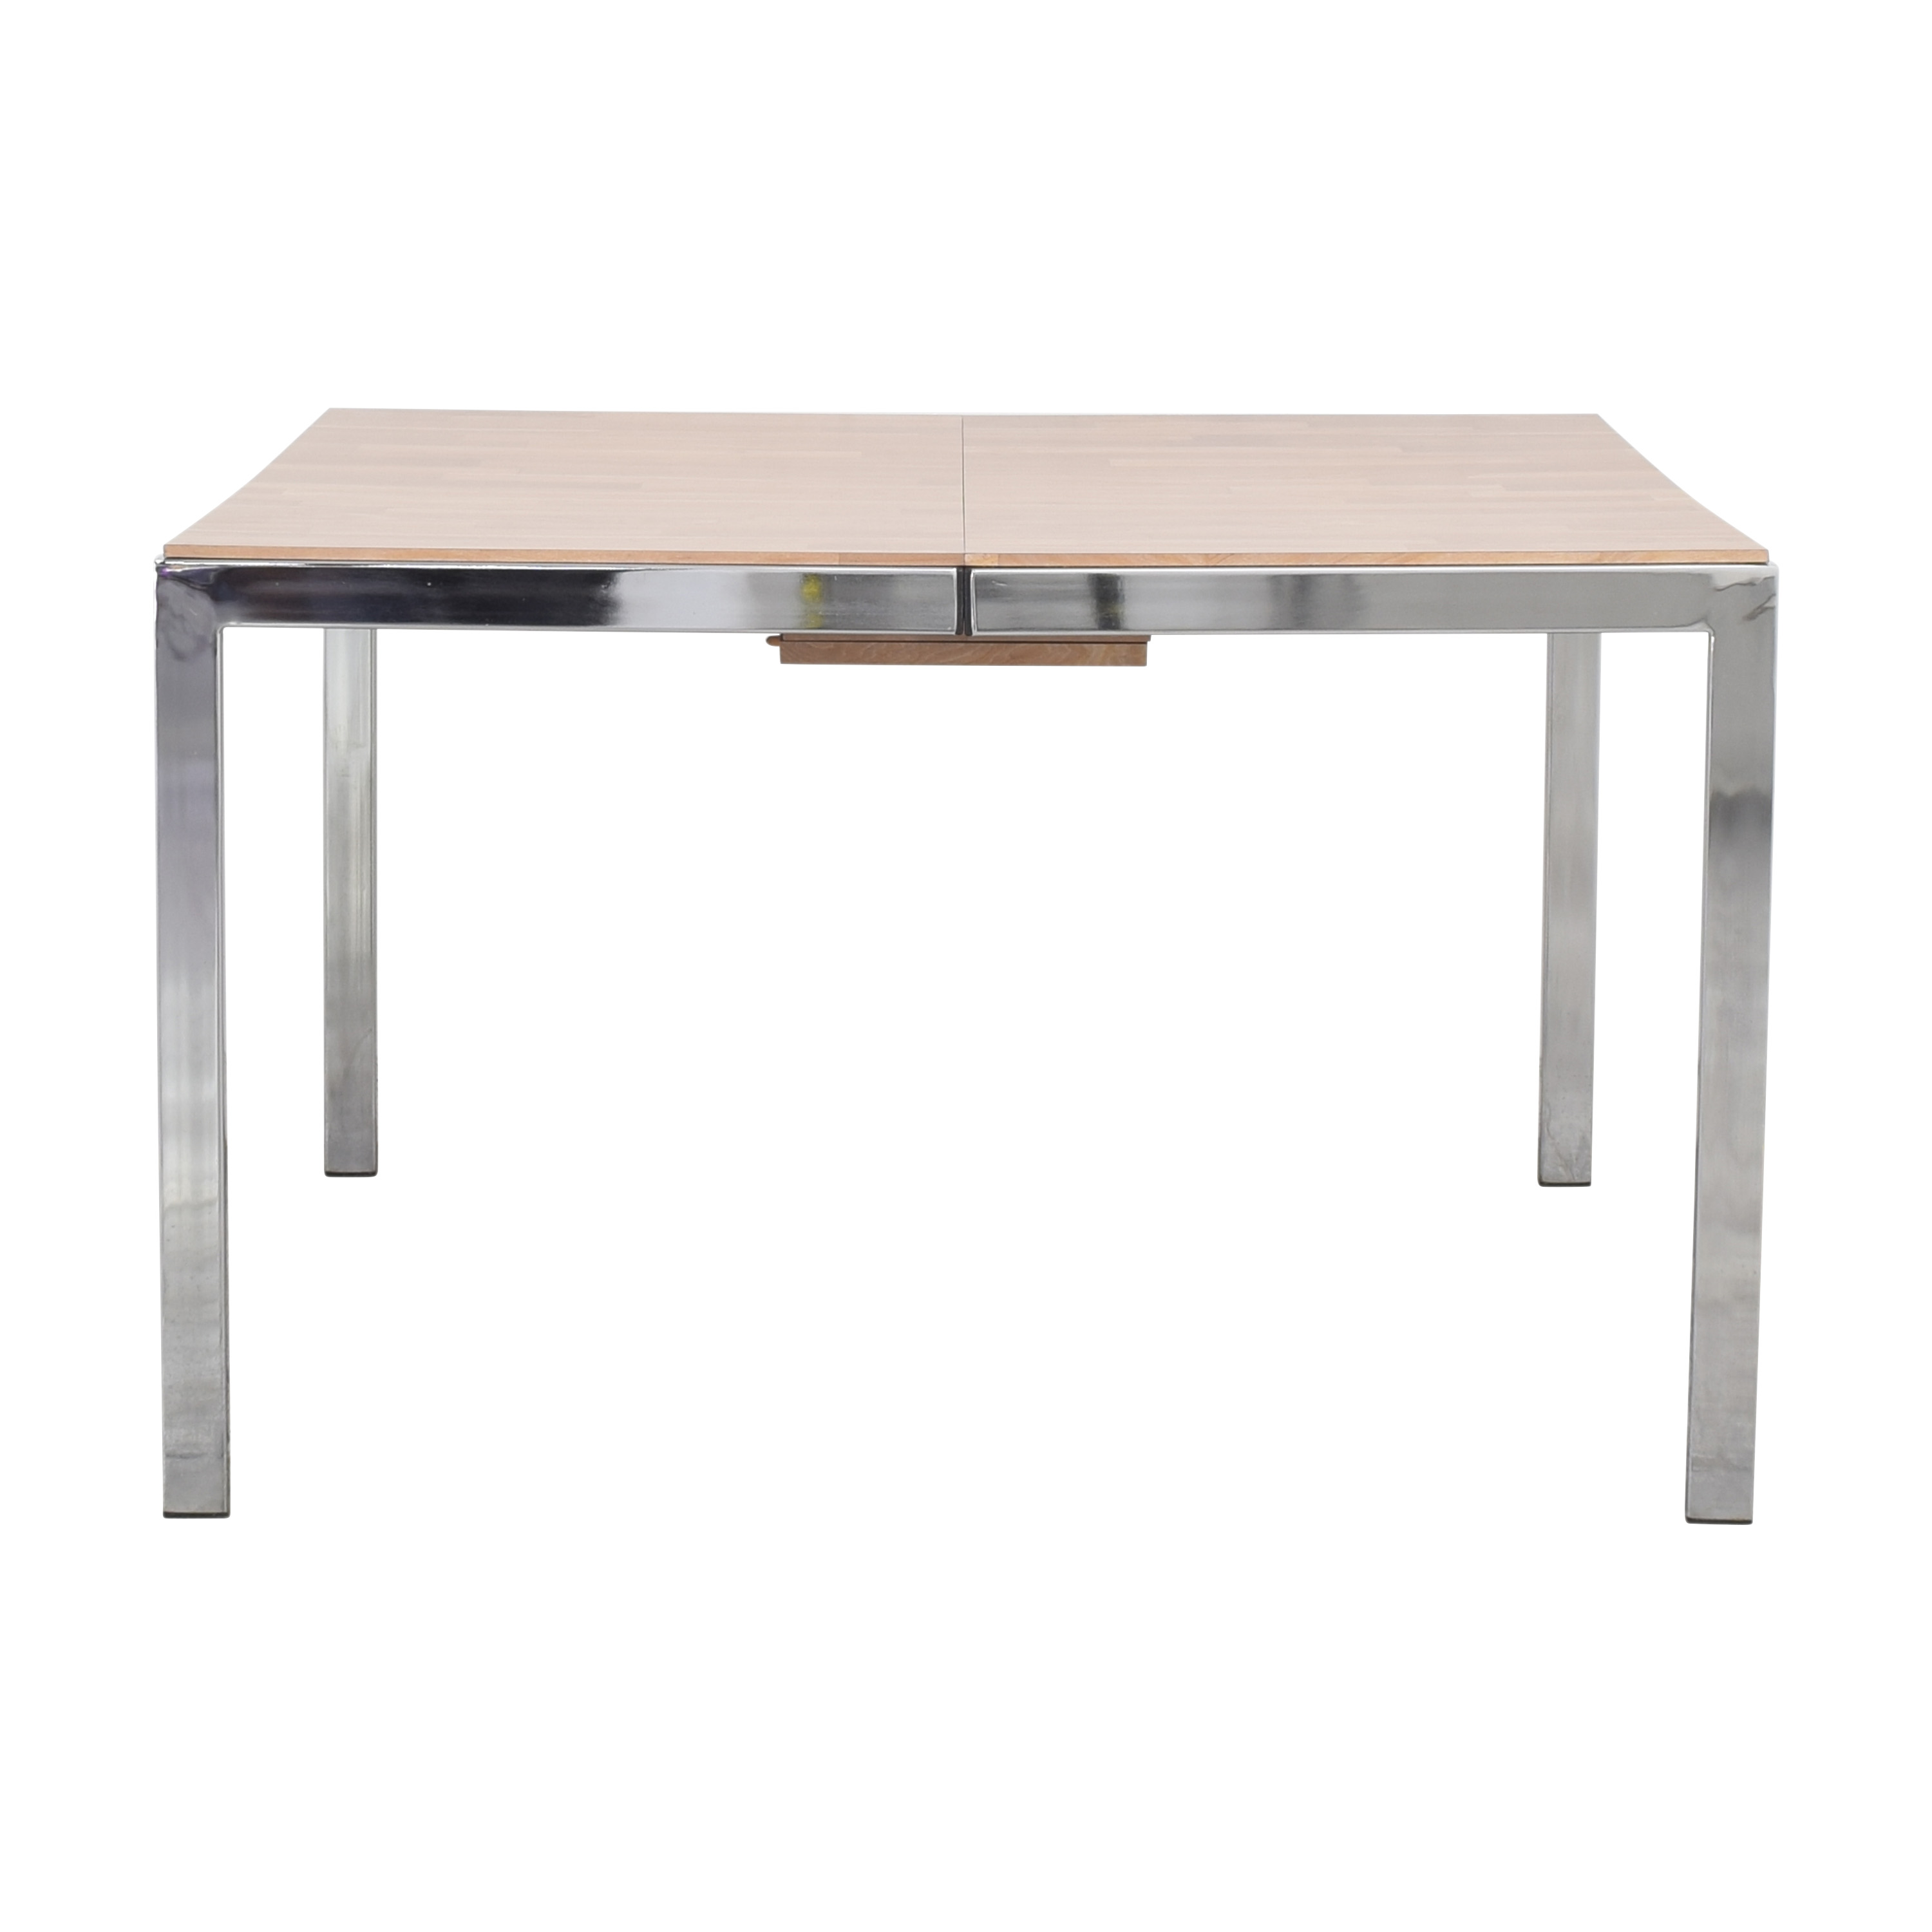 Macy's Macy's Vintage Extendable Dining Table ct